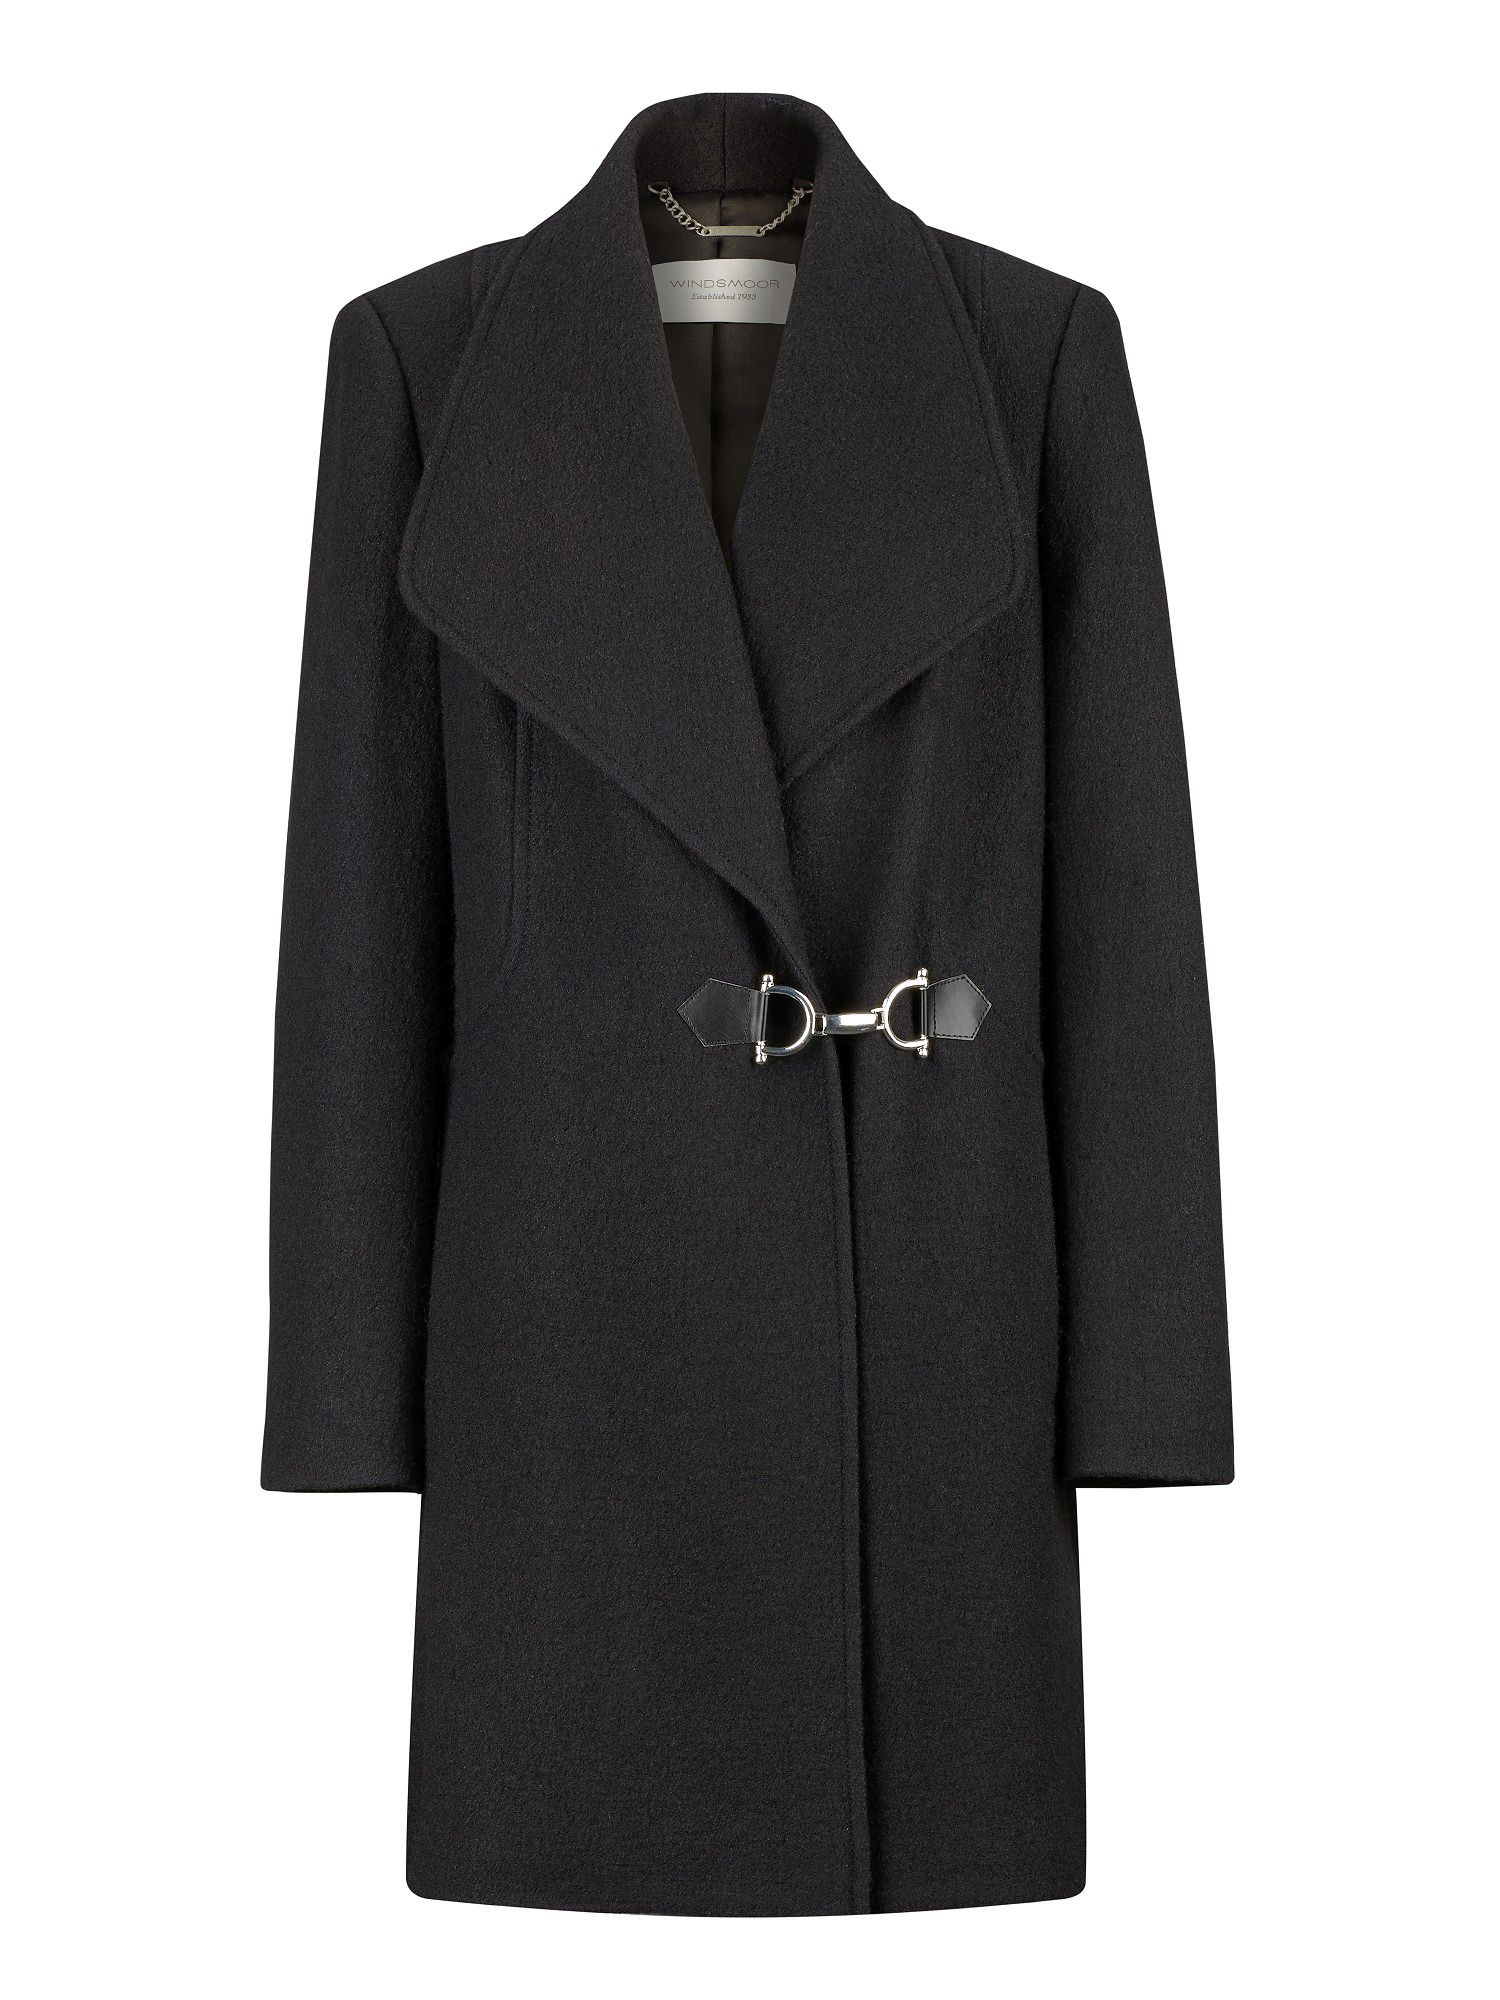 Mid-length black wool coat